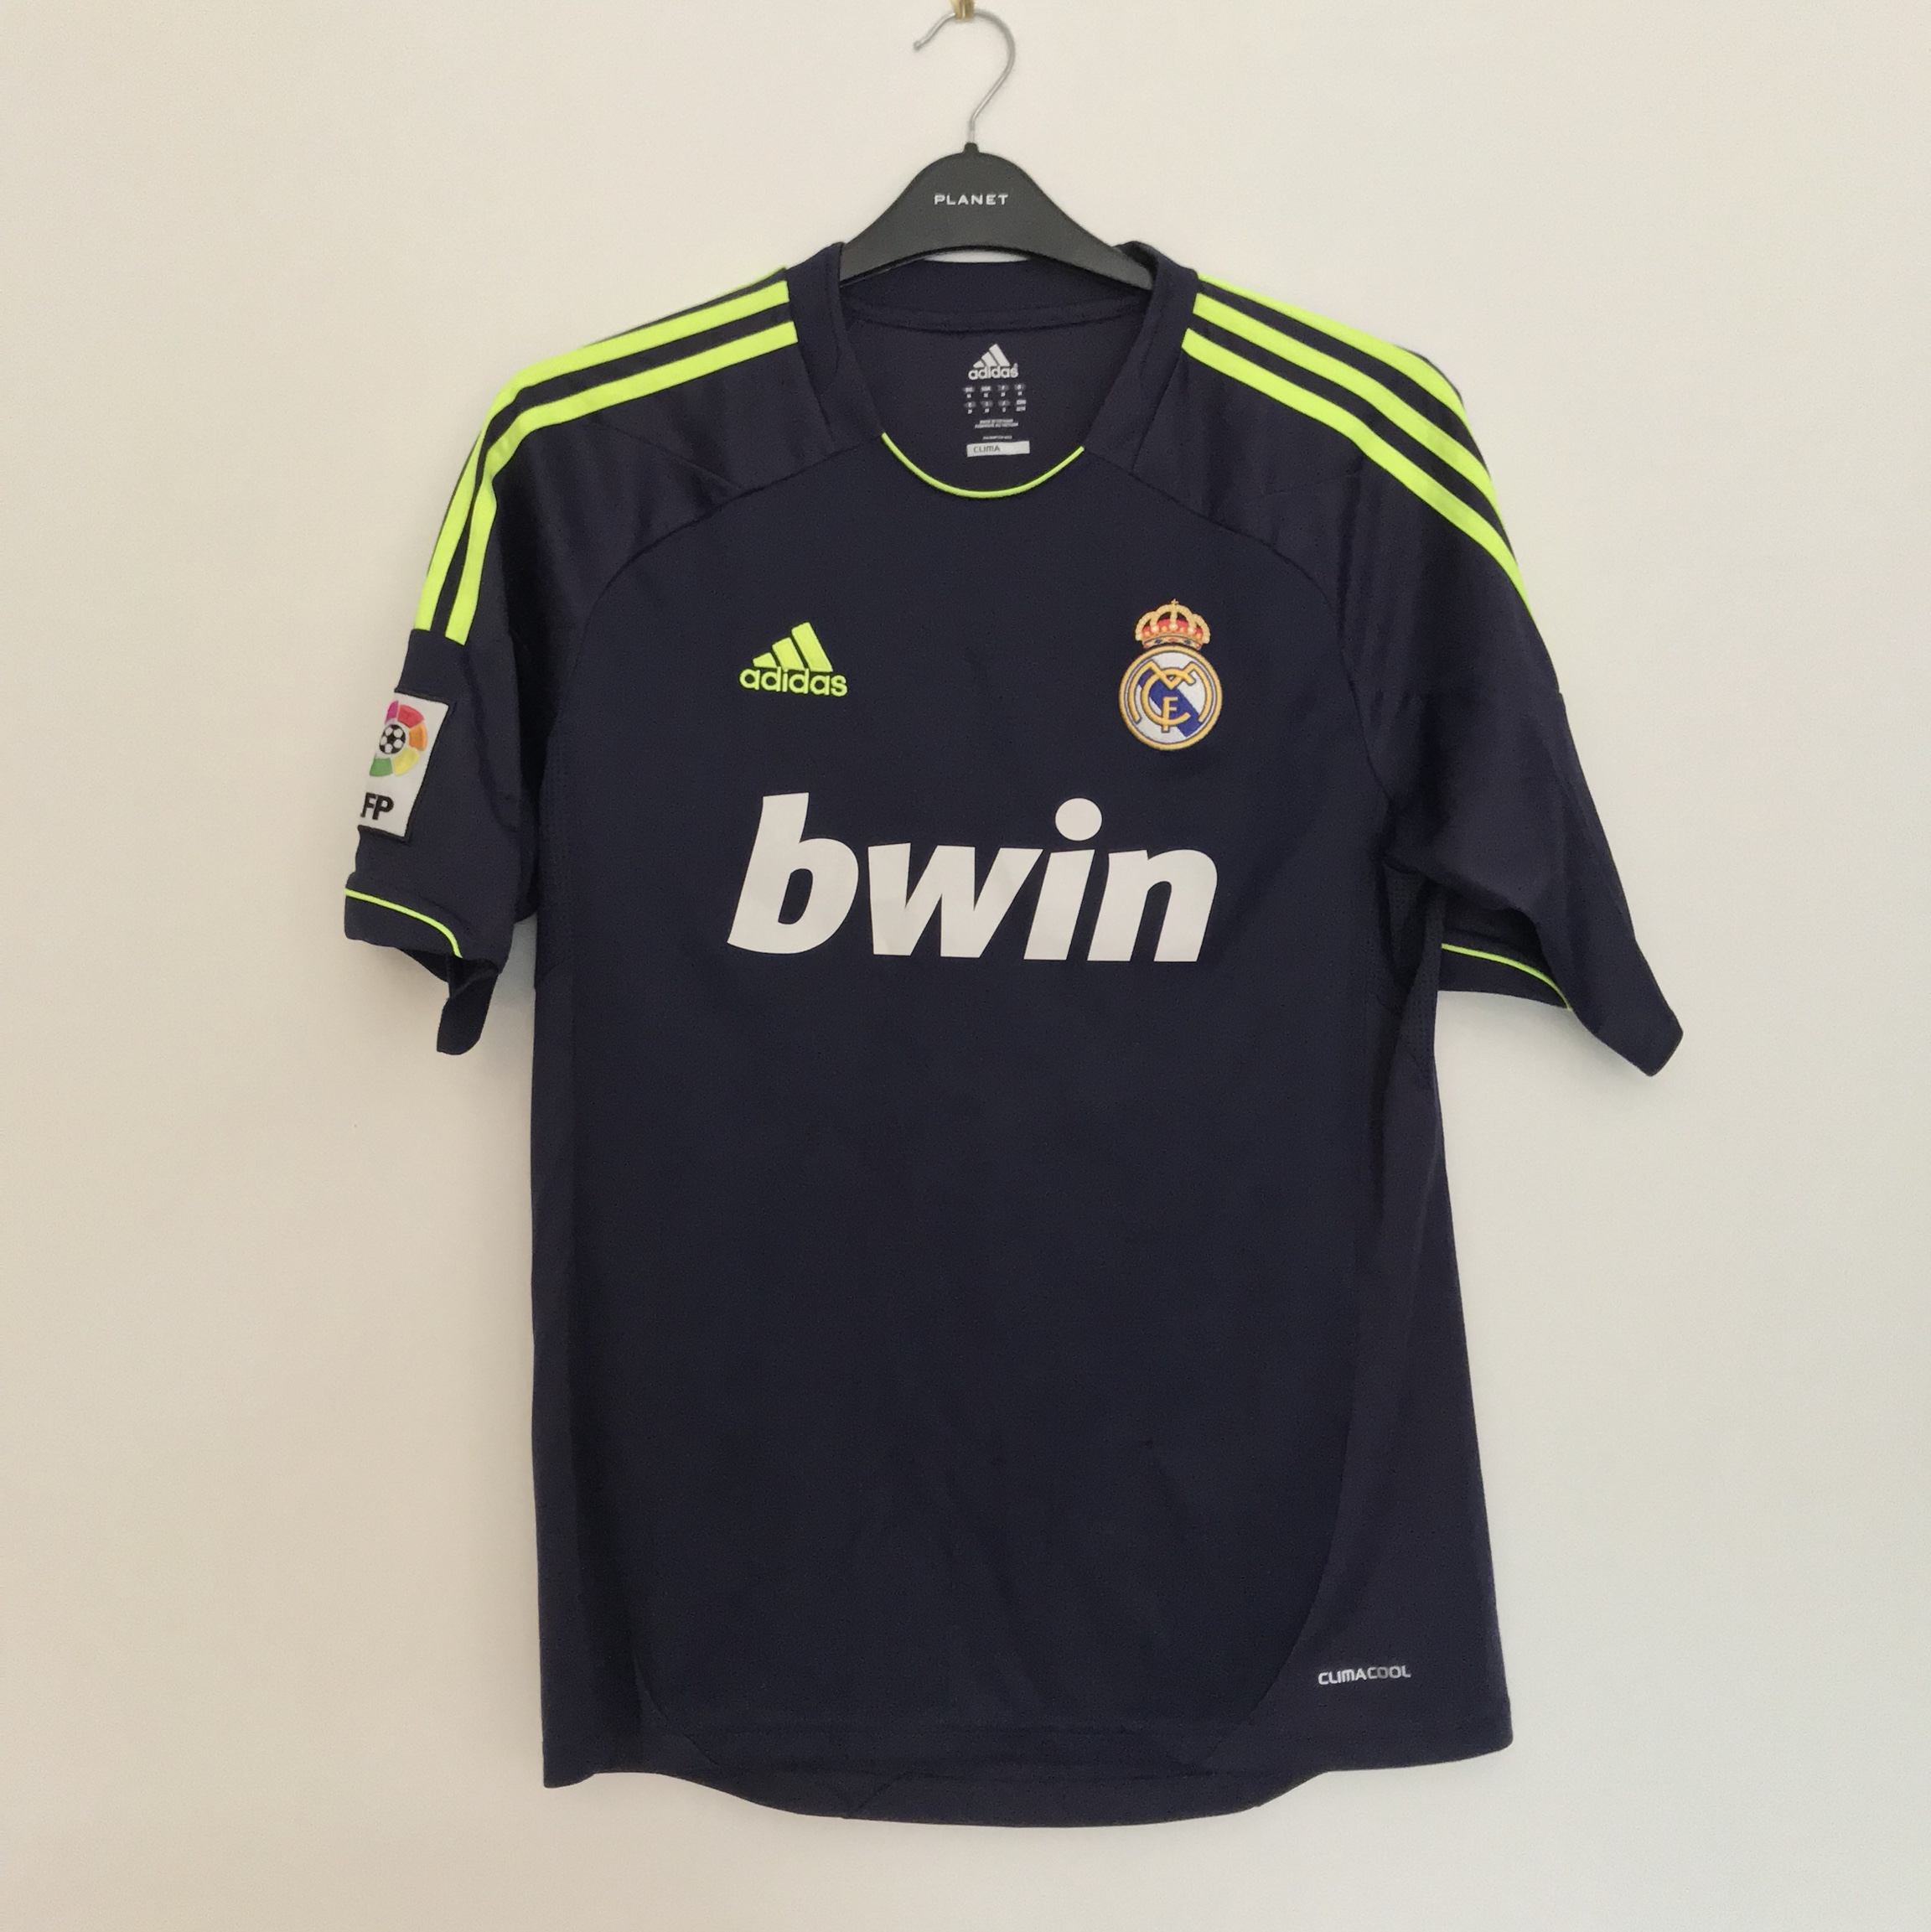 low priced 61f53 d28c8 FOOTBALL JERSEY / REAL MADRID 2013/14 AWAY KIT in ...